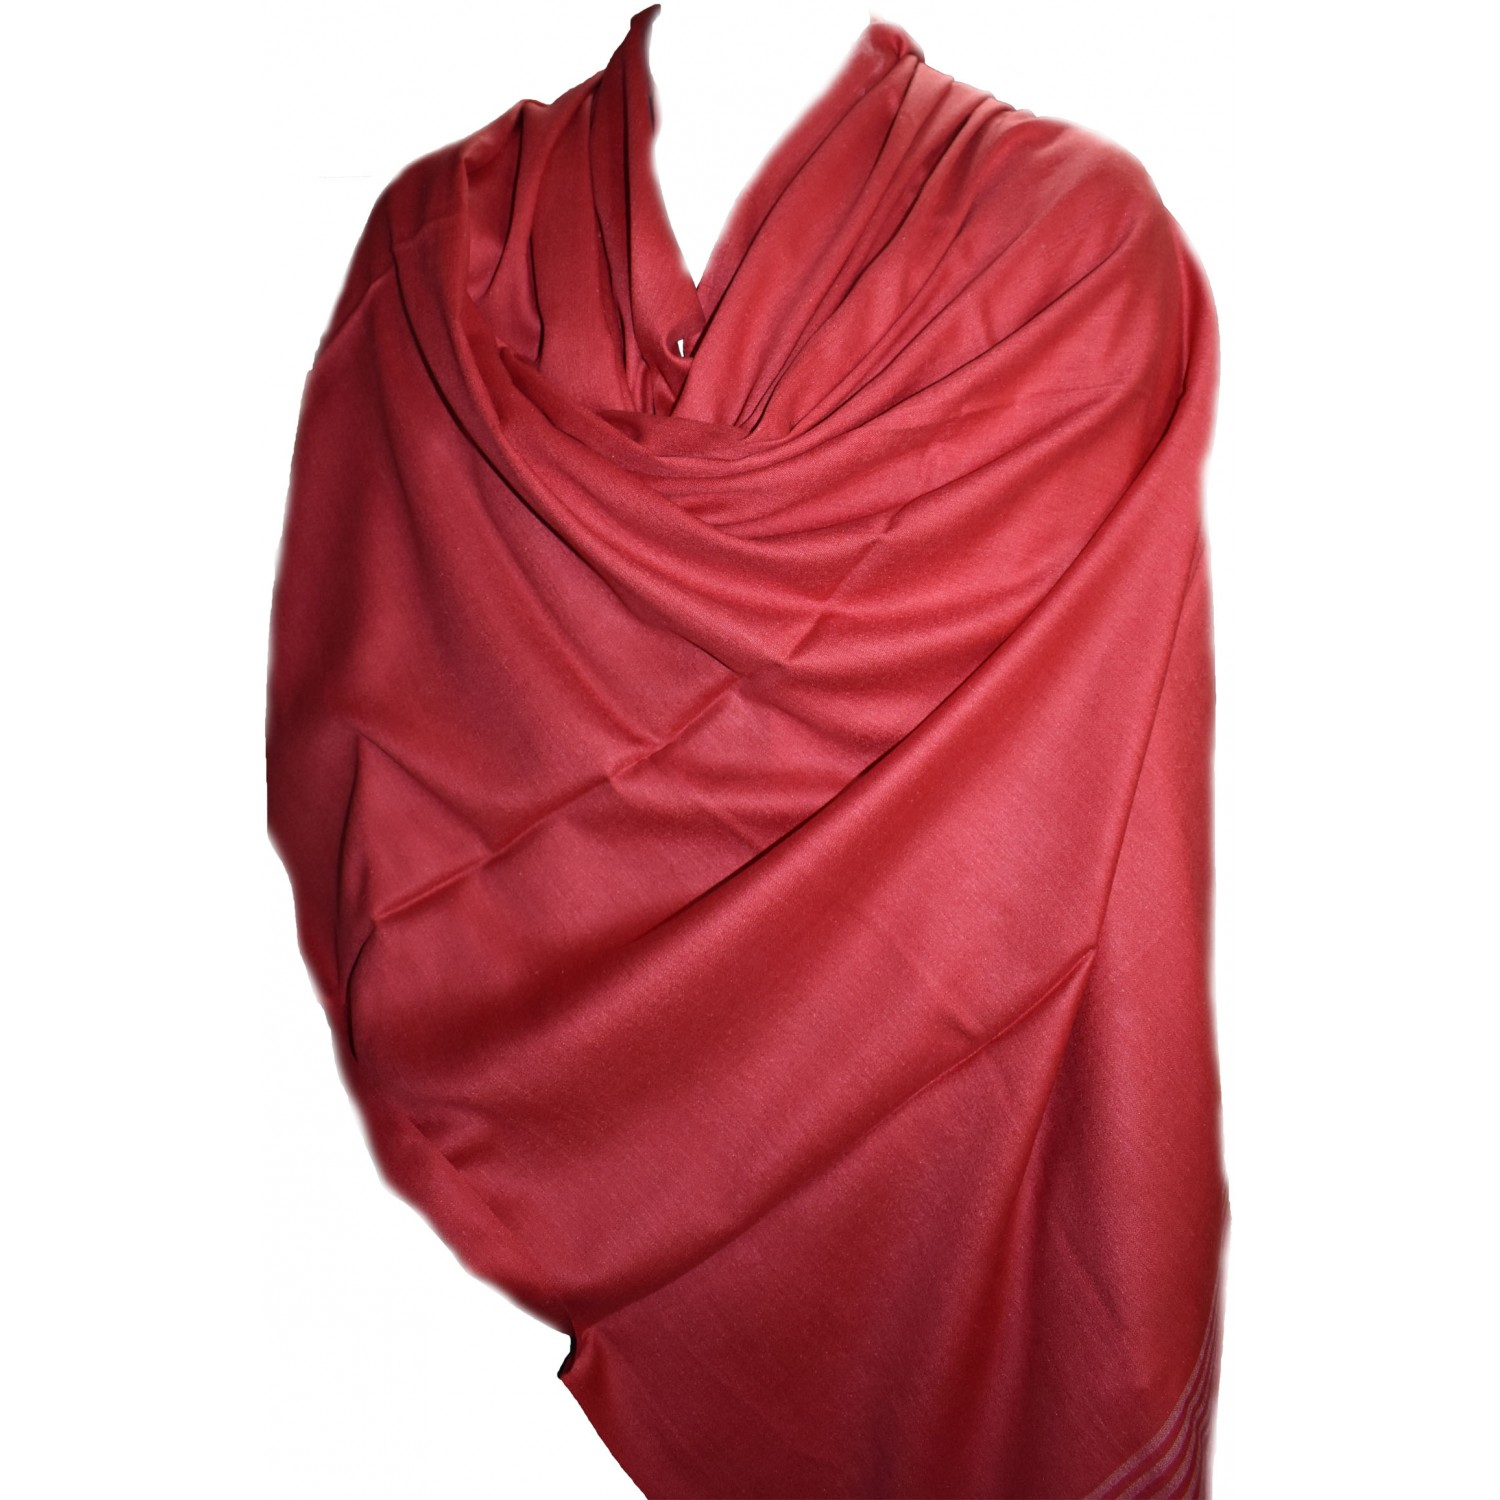 Gents Shawl- Loi PS 100% Handloom Silk& Wool Red